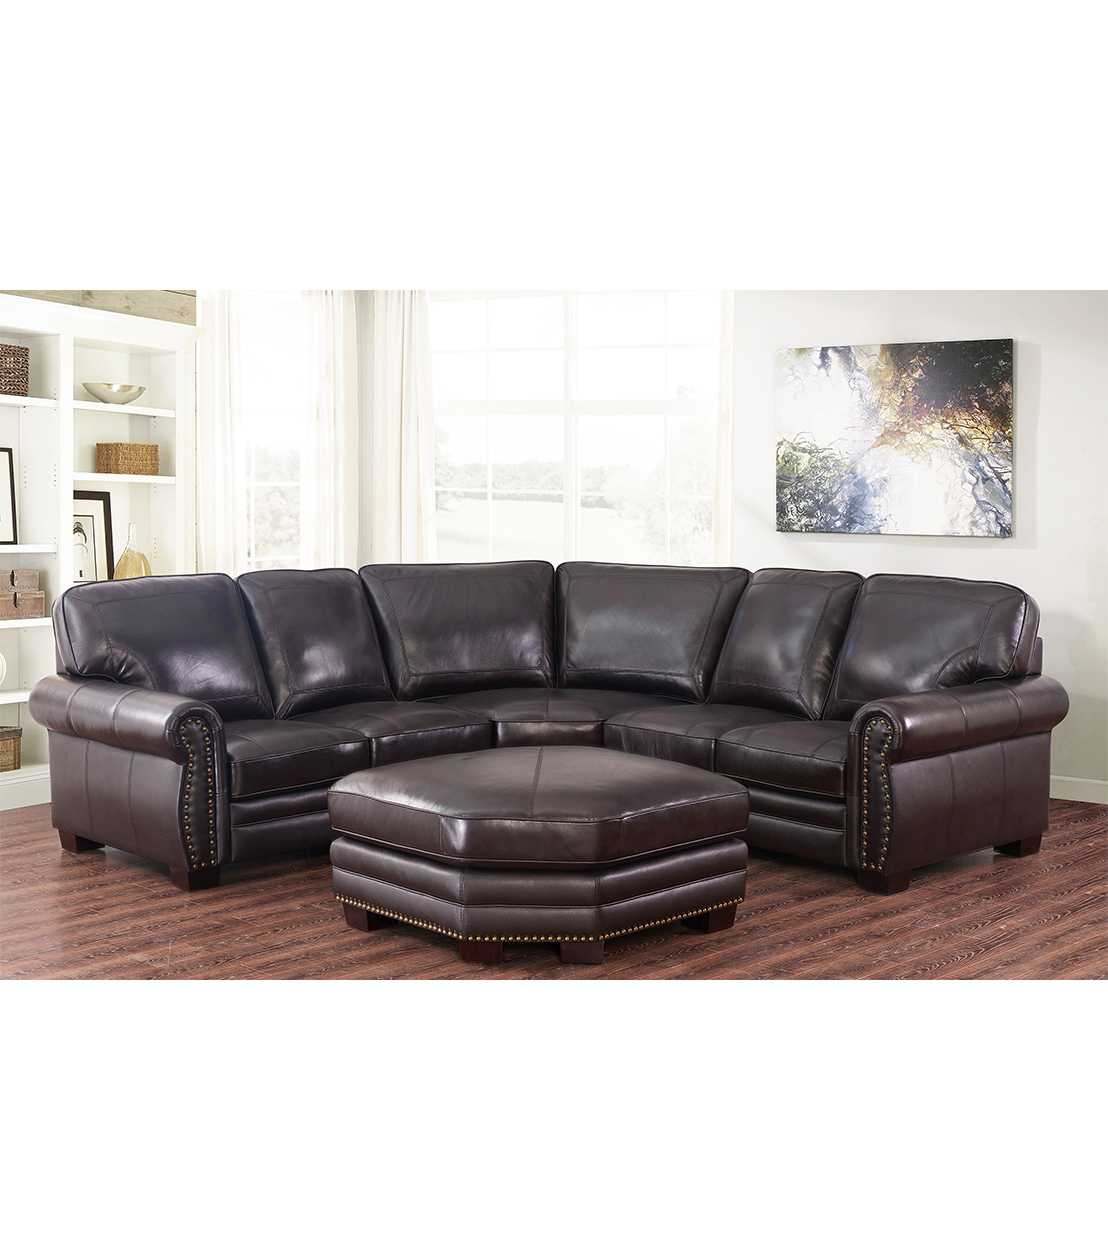 Well Liked Adeline 3 Piece Sectionals Inside Sectionals : Adeline Leather Sectional (View 3 of 20)